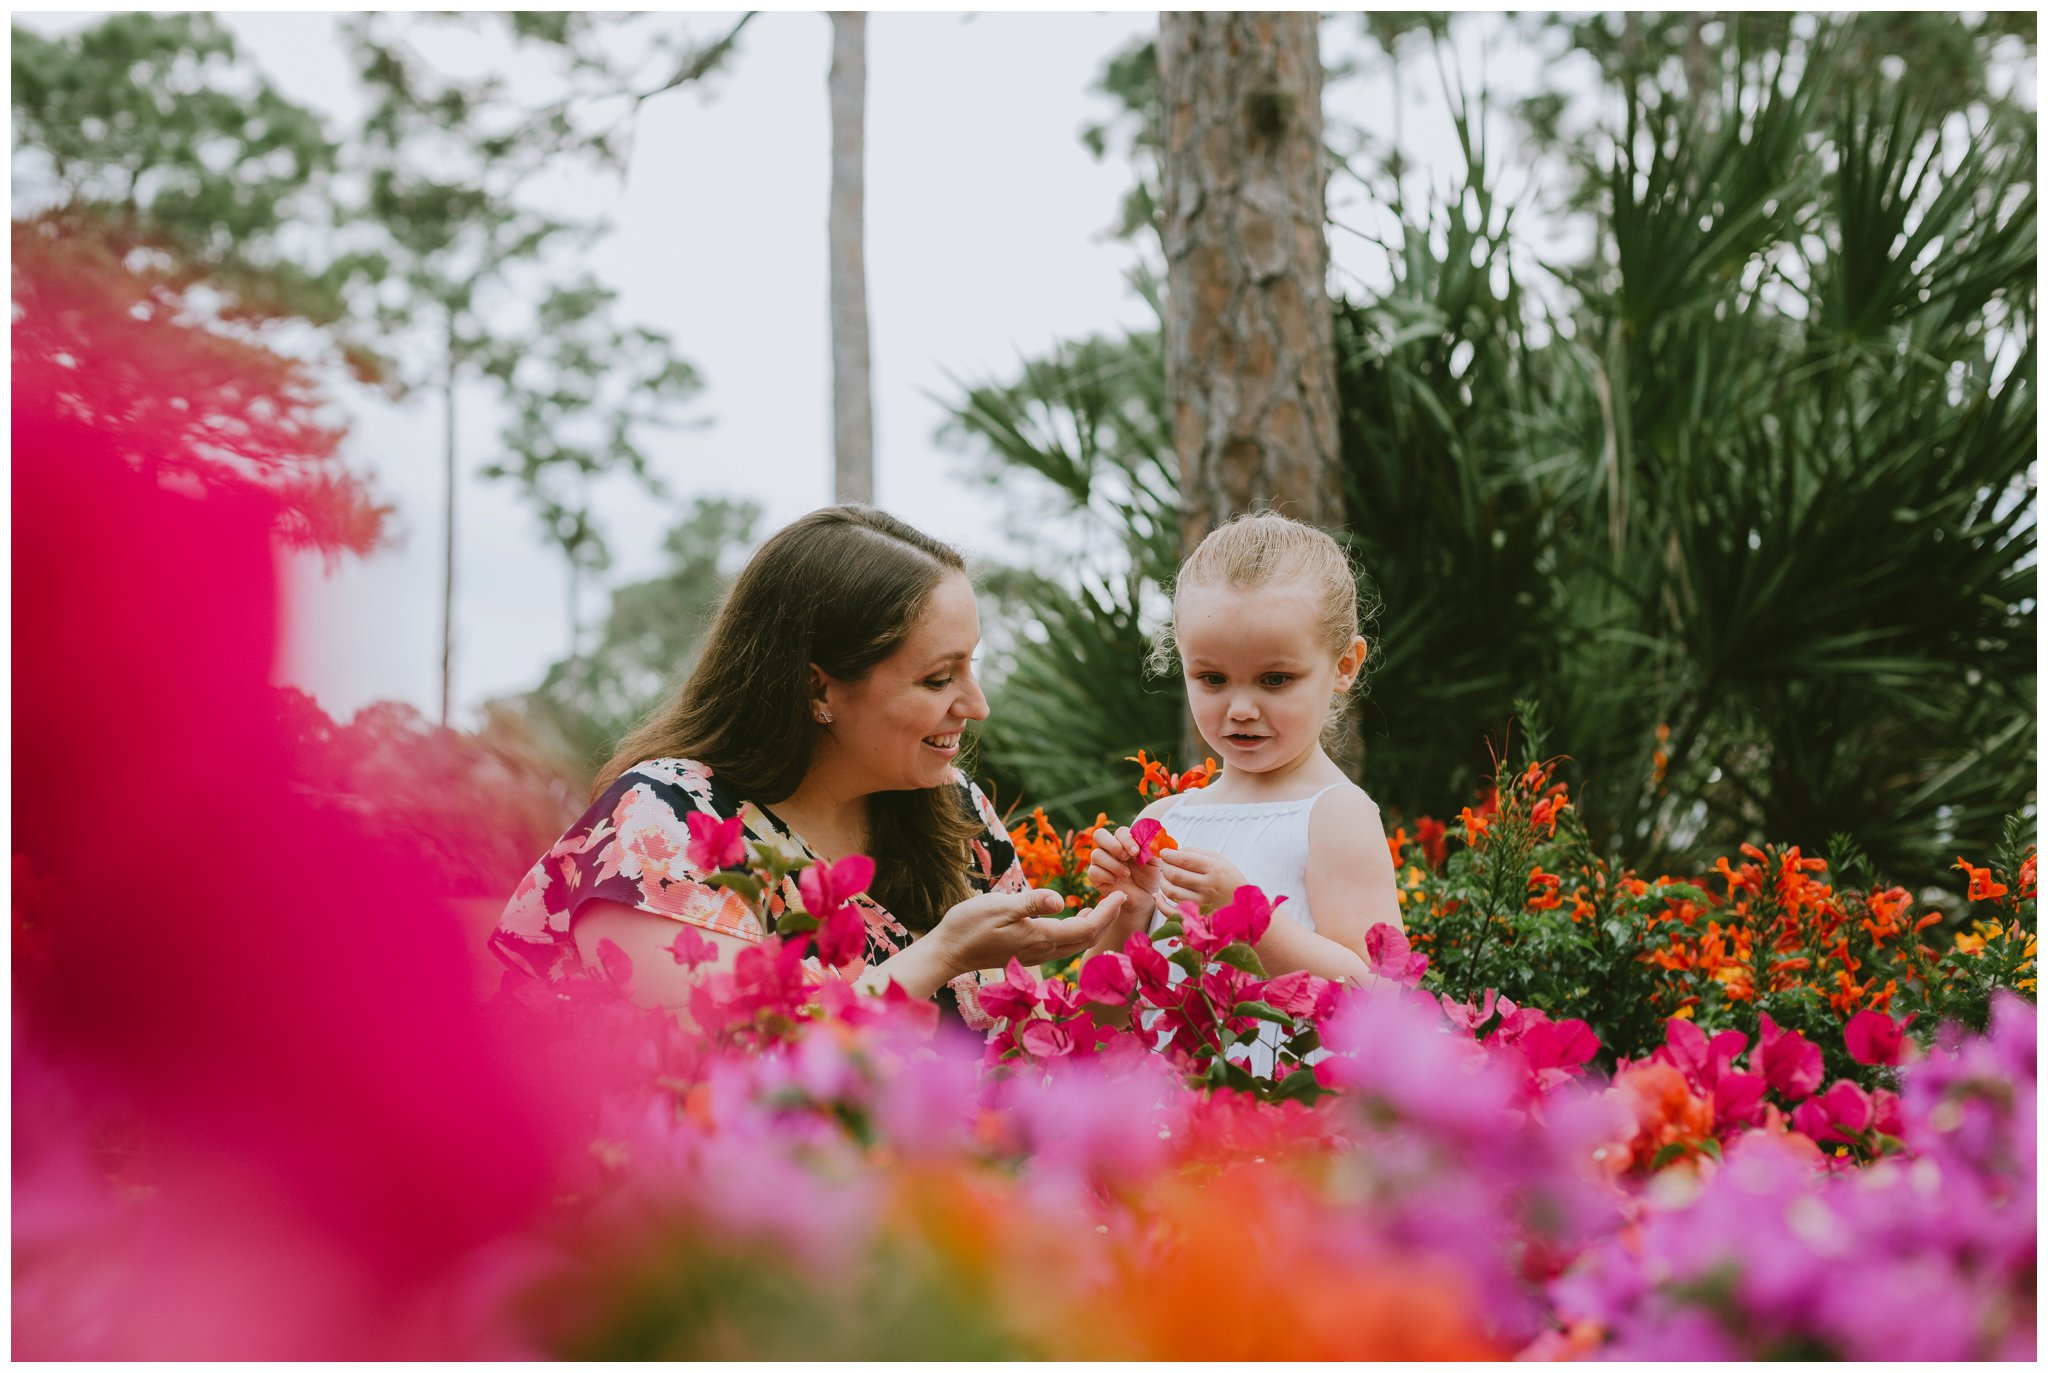 Kimberly Smith Photography| Port St Lucie Botanical Gardens| Maternity Photos| Jupiter Florida Photographer | Stuart Fl photographer_0207.jpg